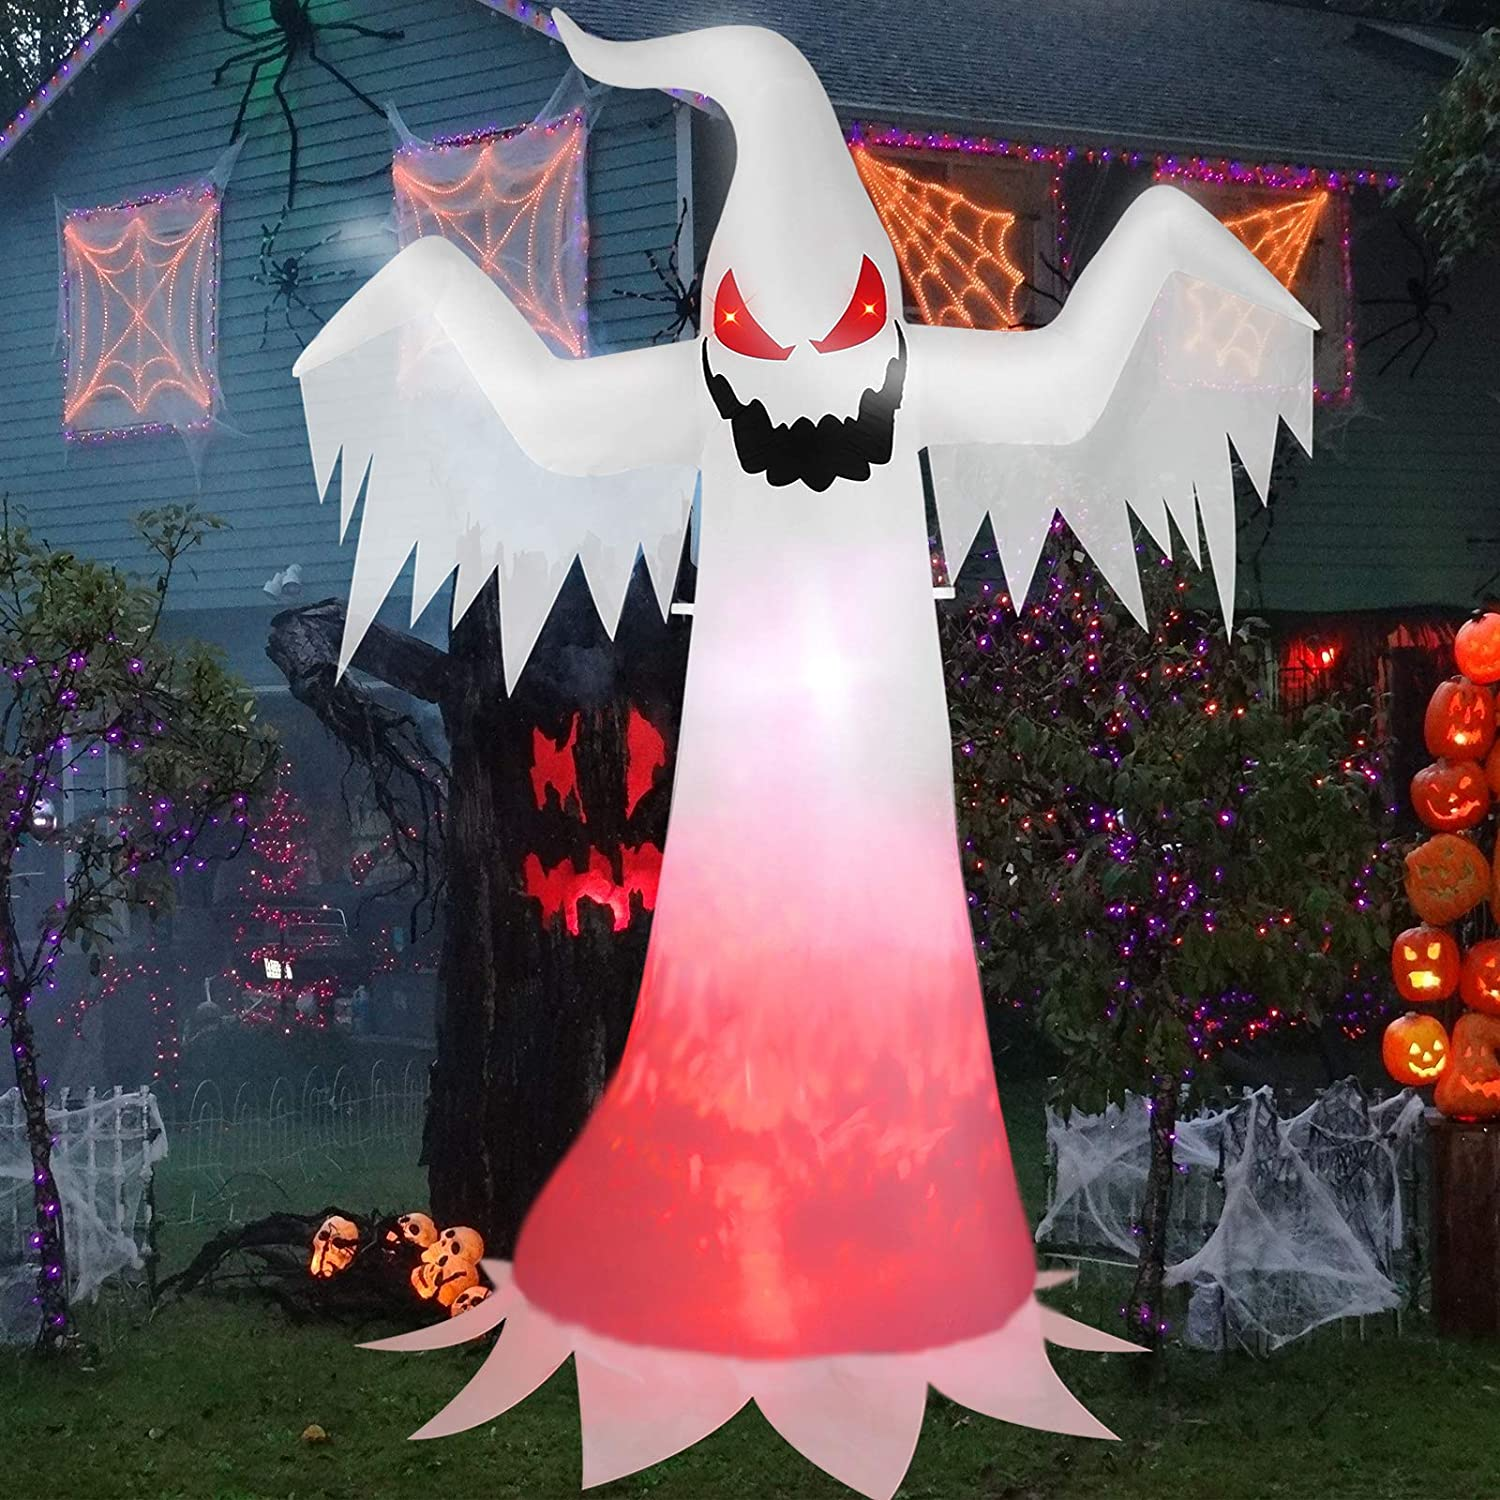 Halloween Inflatables White Ghost 8 Feet, Spooky Outdoor Decorations Blow up Ghost for Yard Patio Lawn Garden Home House Decor, IP44 Weather Proof, Creepy Ghost with Evil Soul, Burning Fire Flame